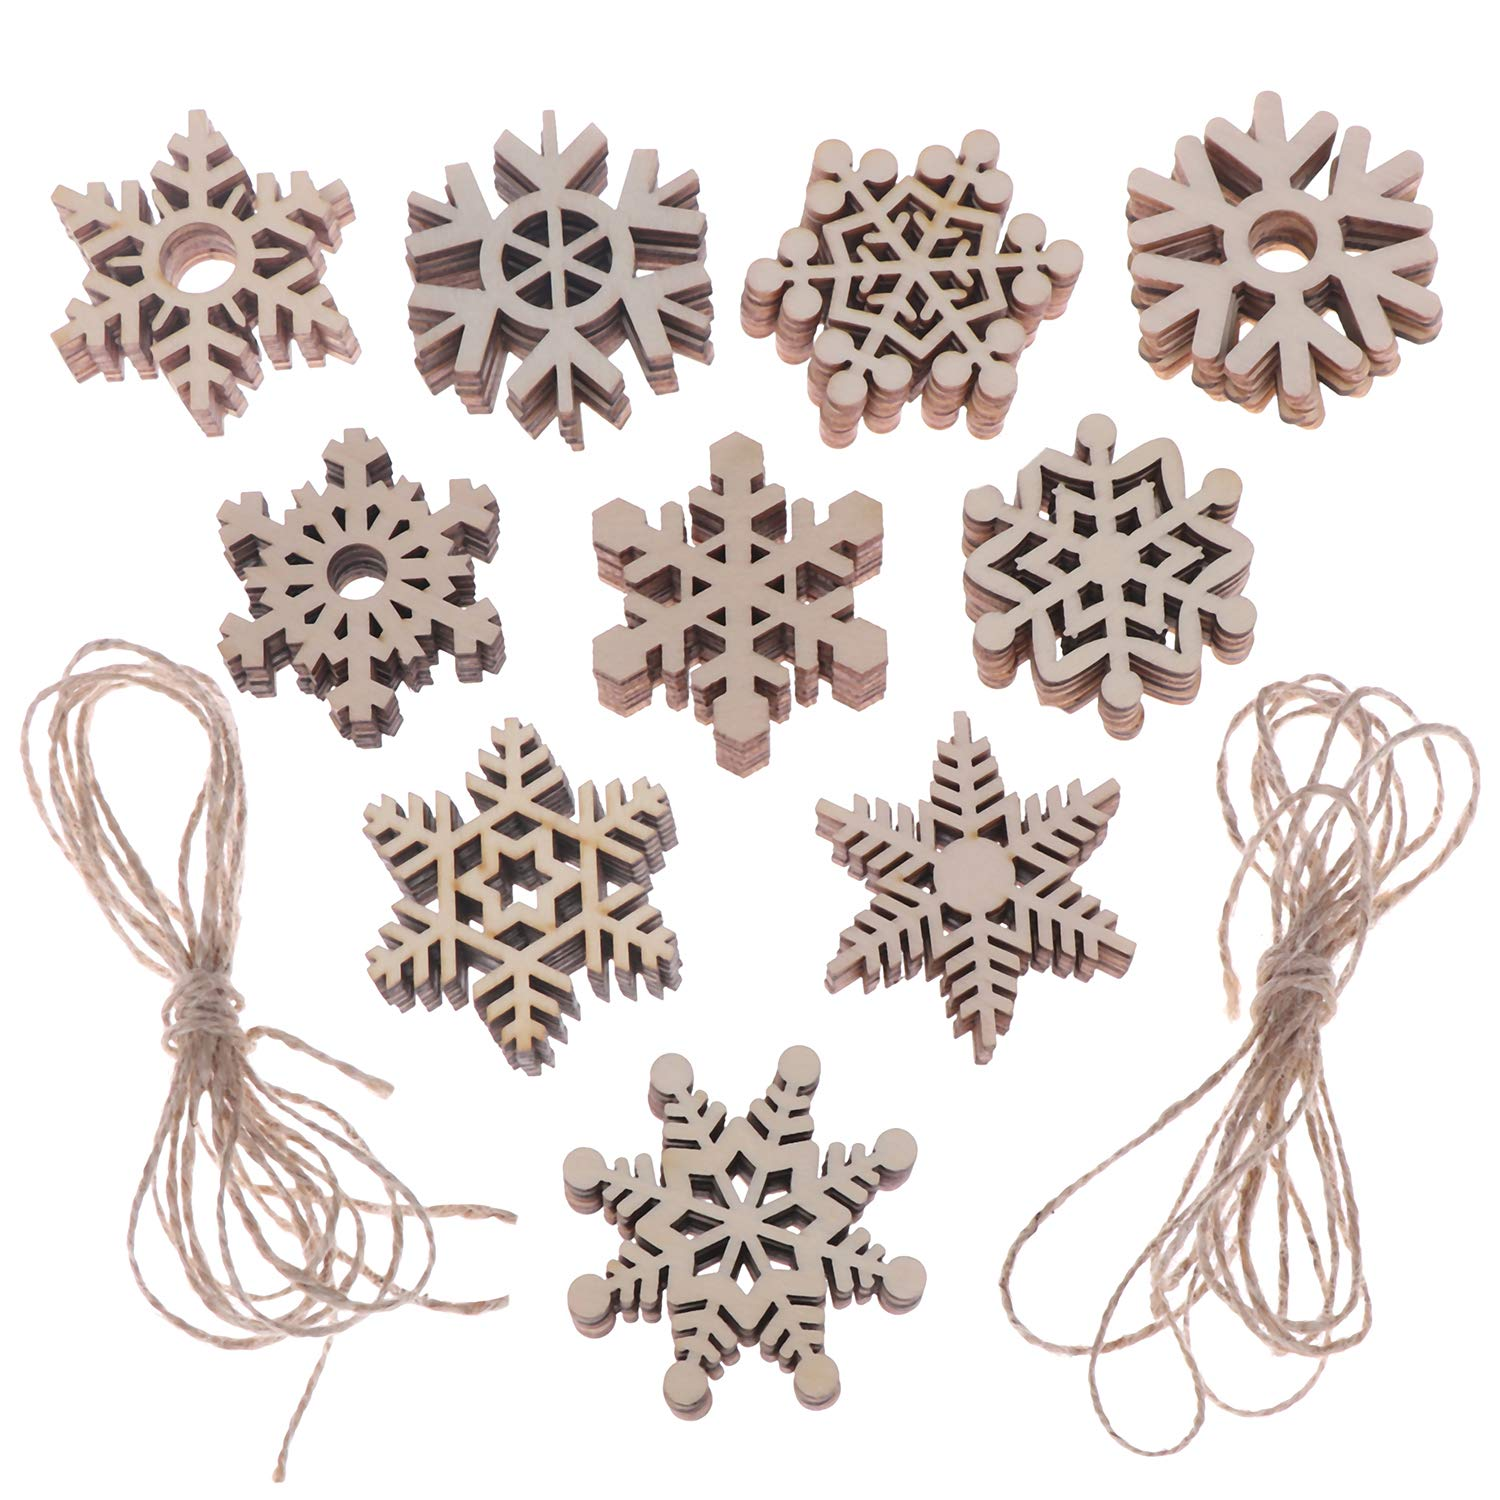 Xgood 60 Pieces Wooden Snowflake DIY Christmas Tree Decorations Wooden Hanging Snowflake Christmas Ornaments Xmas Decor Strings with 2 Pieces 2m Twine Ropes for Christmas Party Crafts Pendant Forever U Lucky